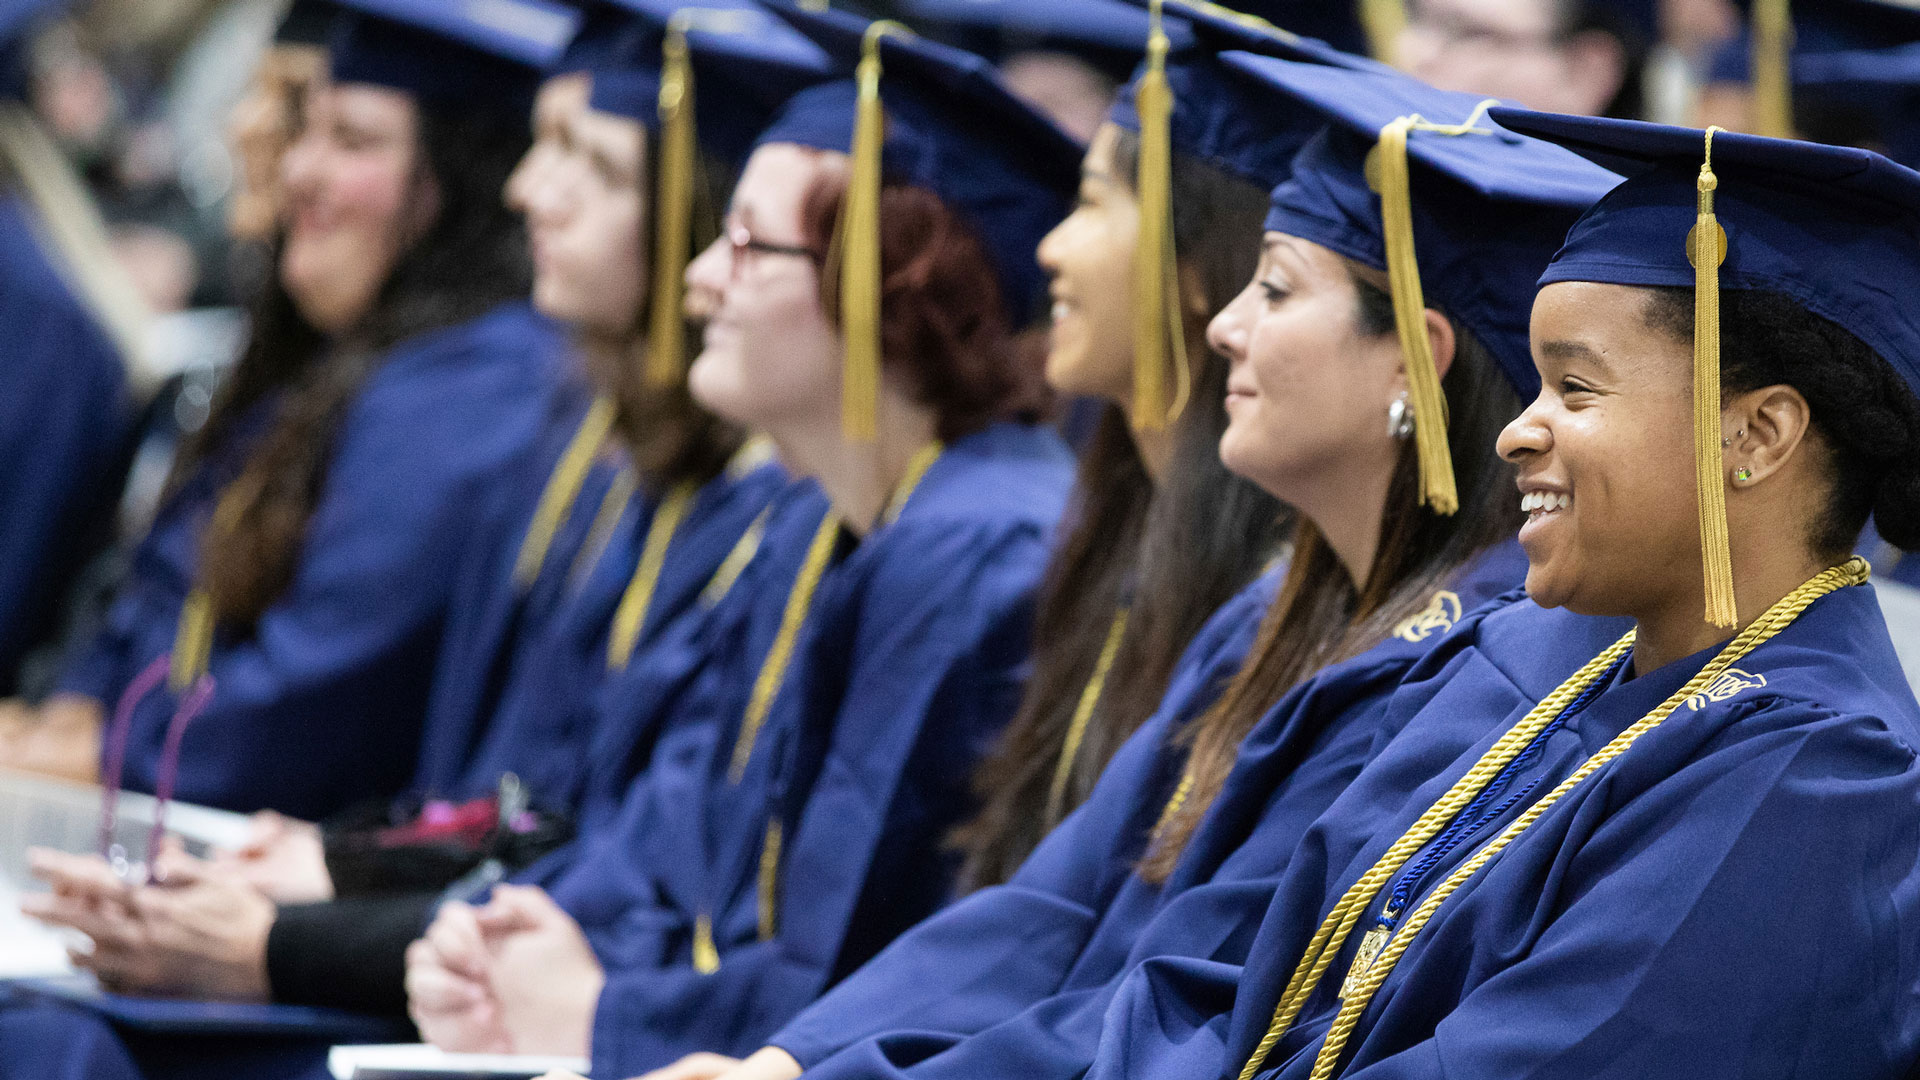 Next week, nearly 3,700 Indian River State College students will have their degrees conferred, marking the seventh consecutive year that the IRSC graduating class has exceeded 3,000.